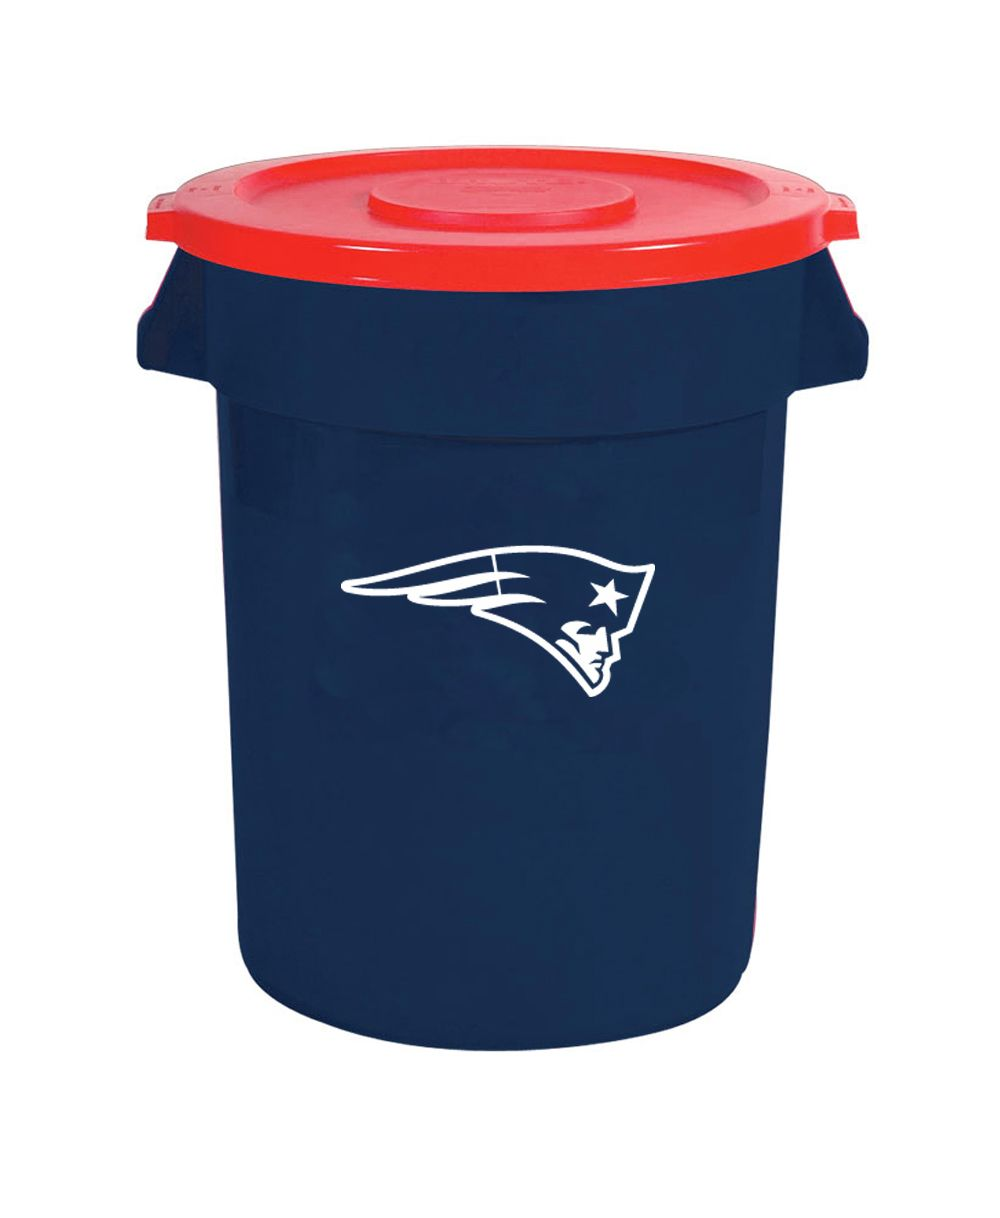 New England Patriots Tailgating Large 32 Gallon Plastic Trash Can ... ffe33ca02a3c